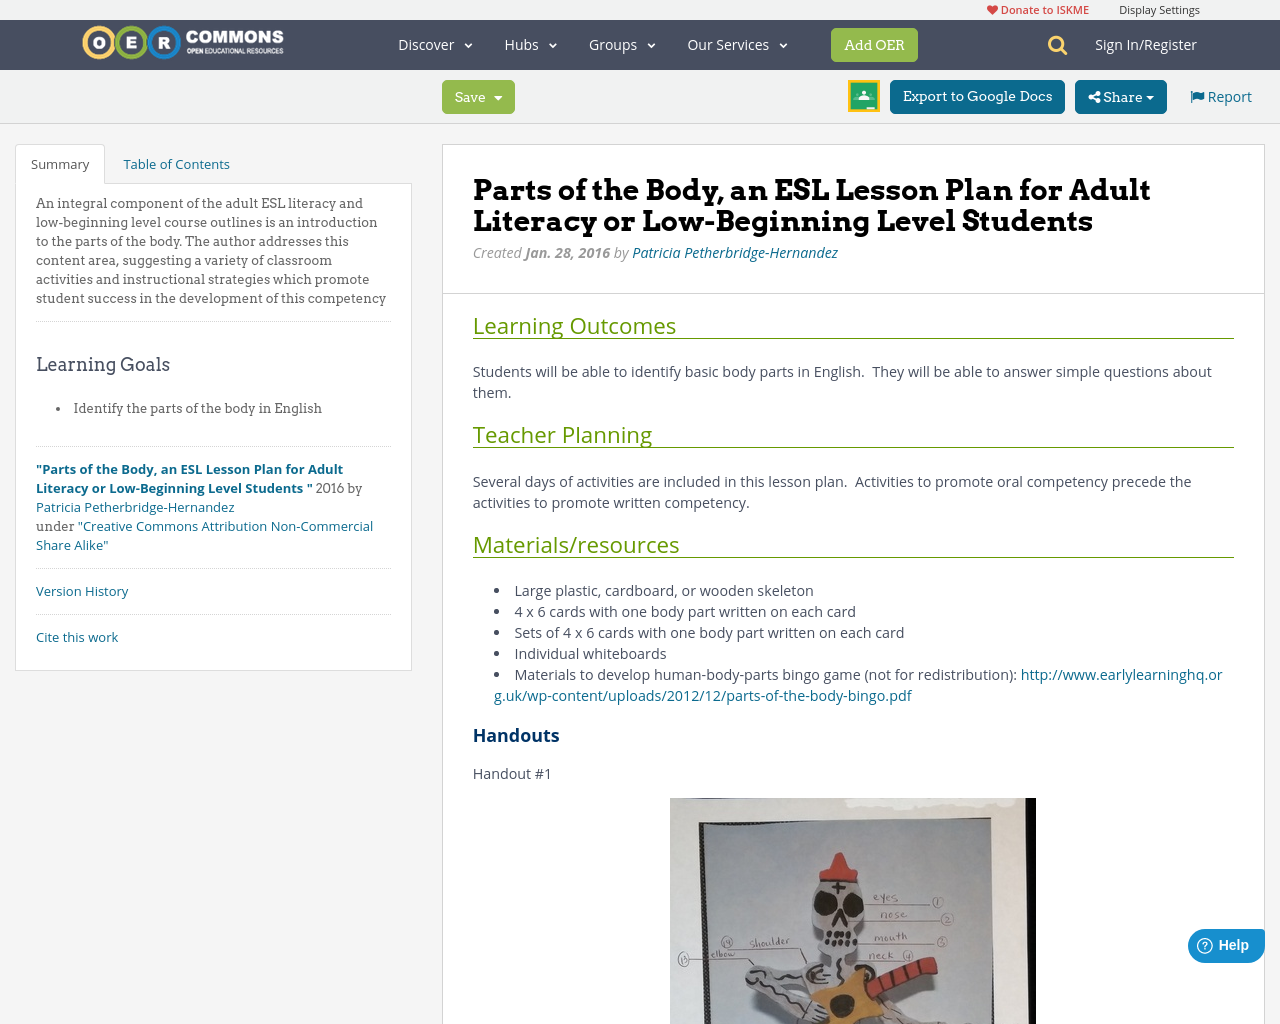 Parts Of The Body An Esl Lesson Plan For Adult Literacy Or Low